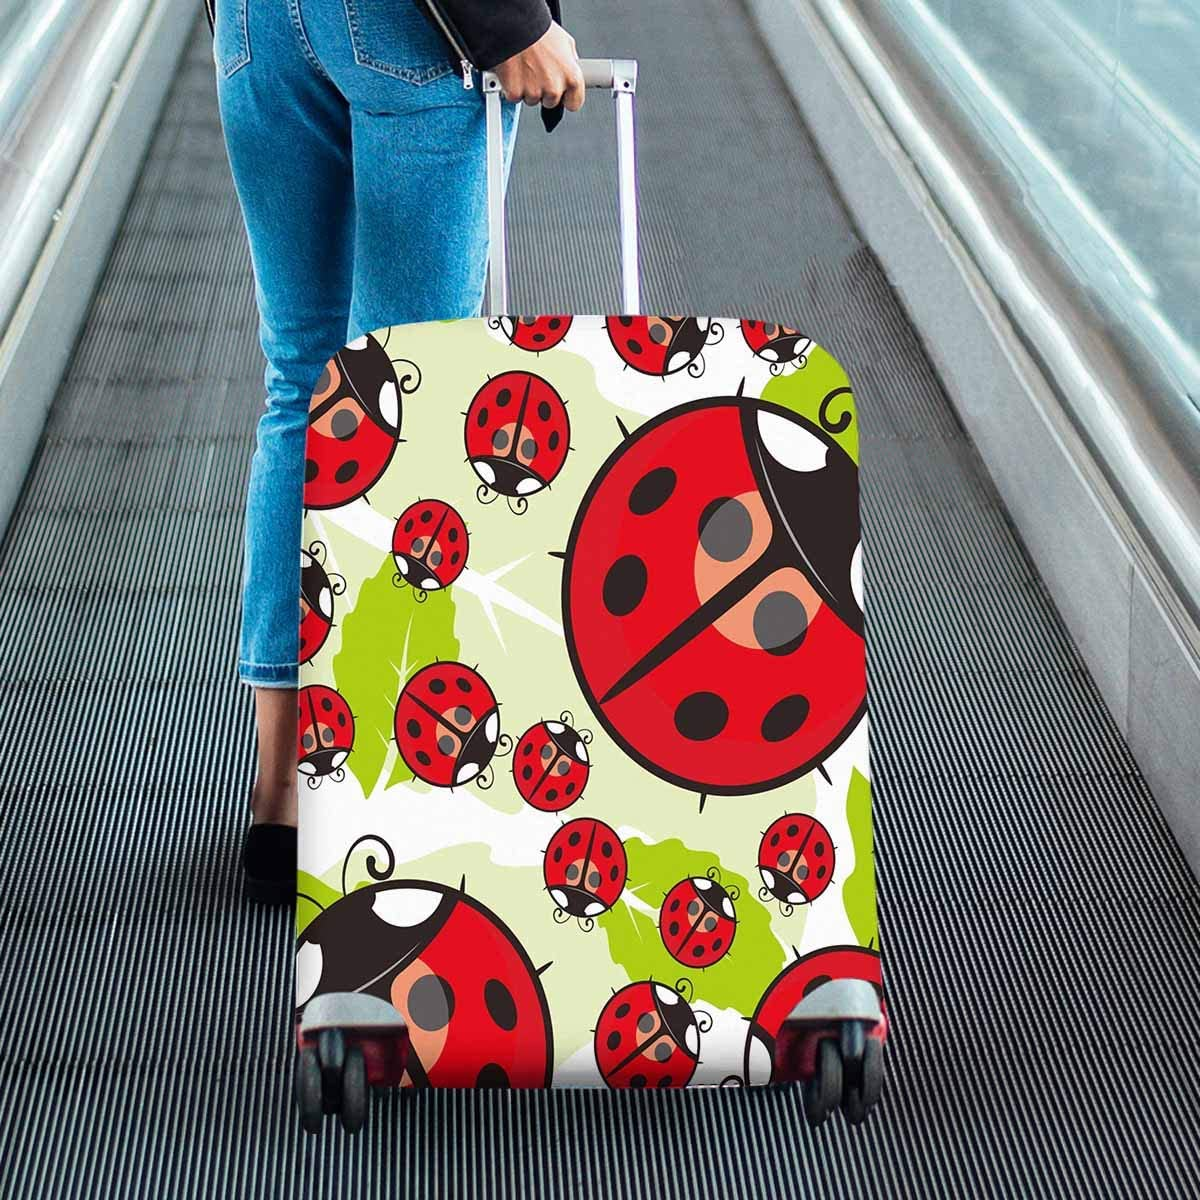 INTERESTPRINT All Over Print Luggage Covers Suitcase Protective Covers Ladybug Wallpaper Fit 26-28 Inch Luggage